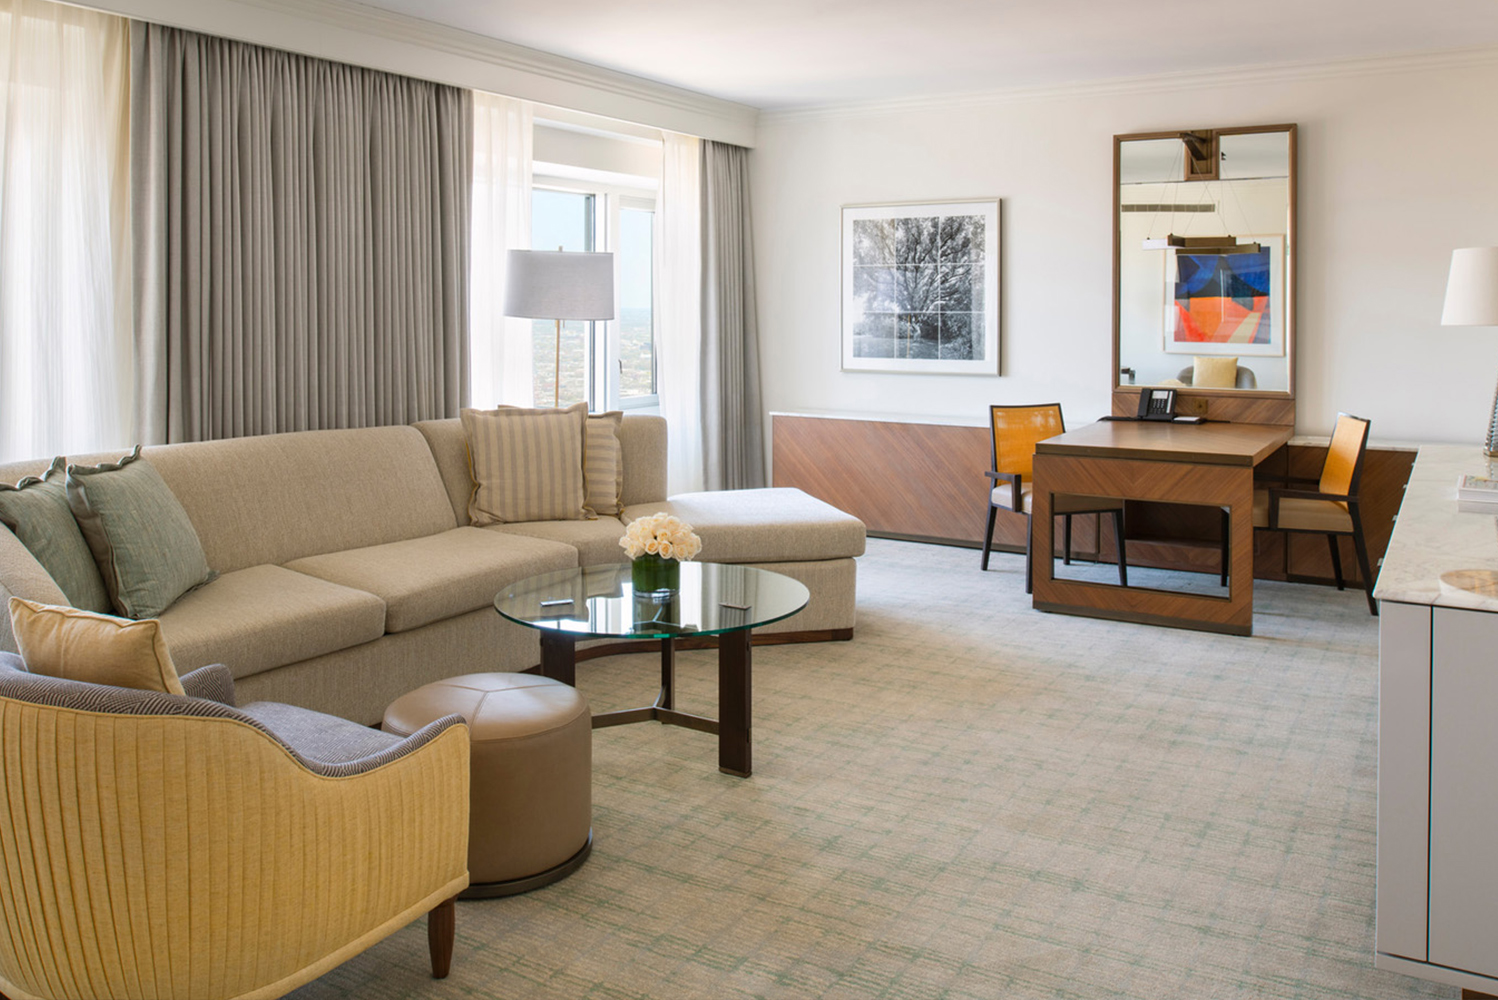 Four Seasons Hotel Chicago, the property with the highest rooms and suites in Chicago, completed the renovation of its one-bedroom suites.